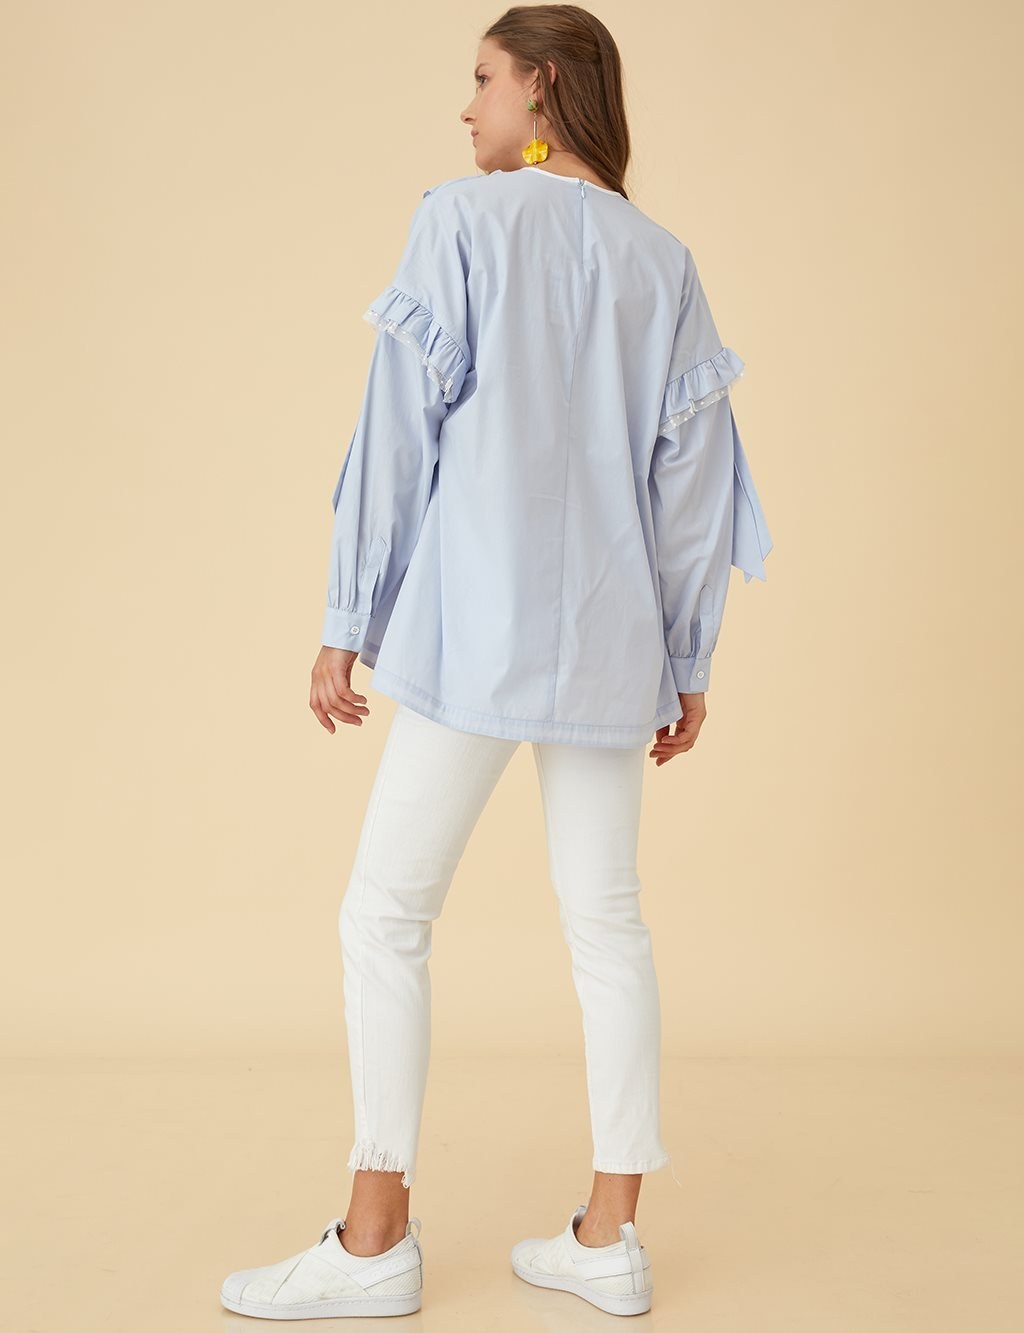 Ruffled Cotton Blouse B9-10126 Blue